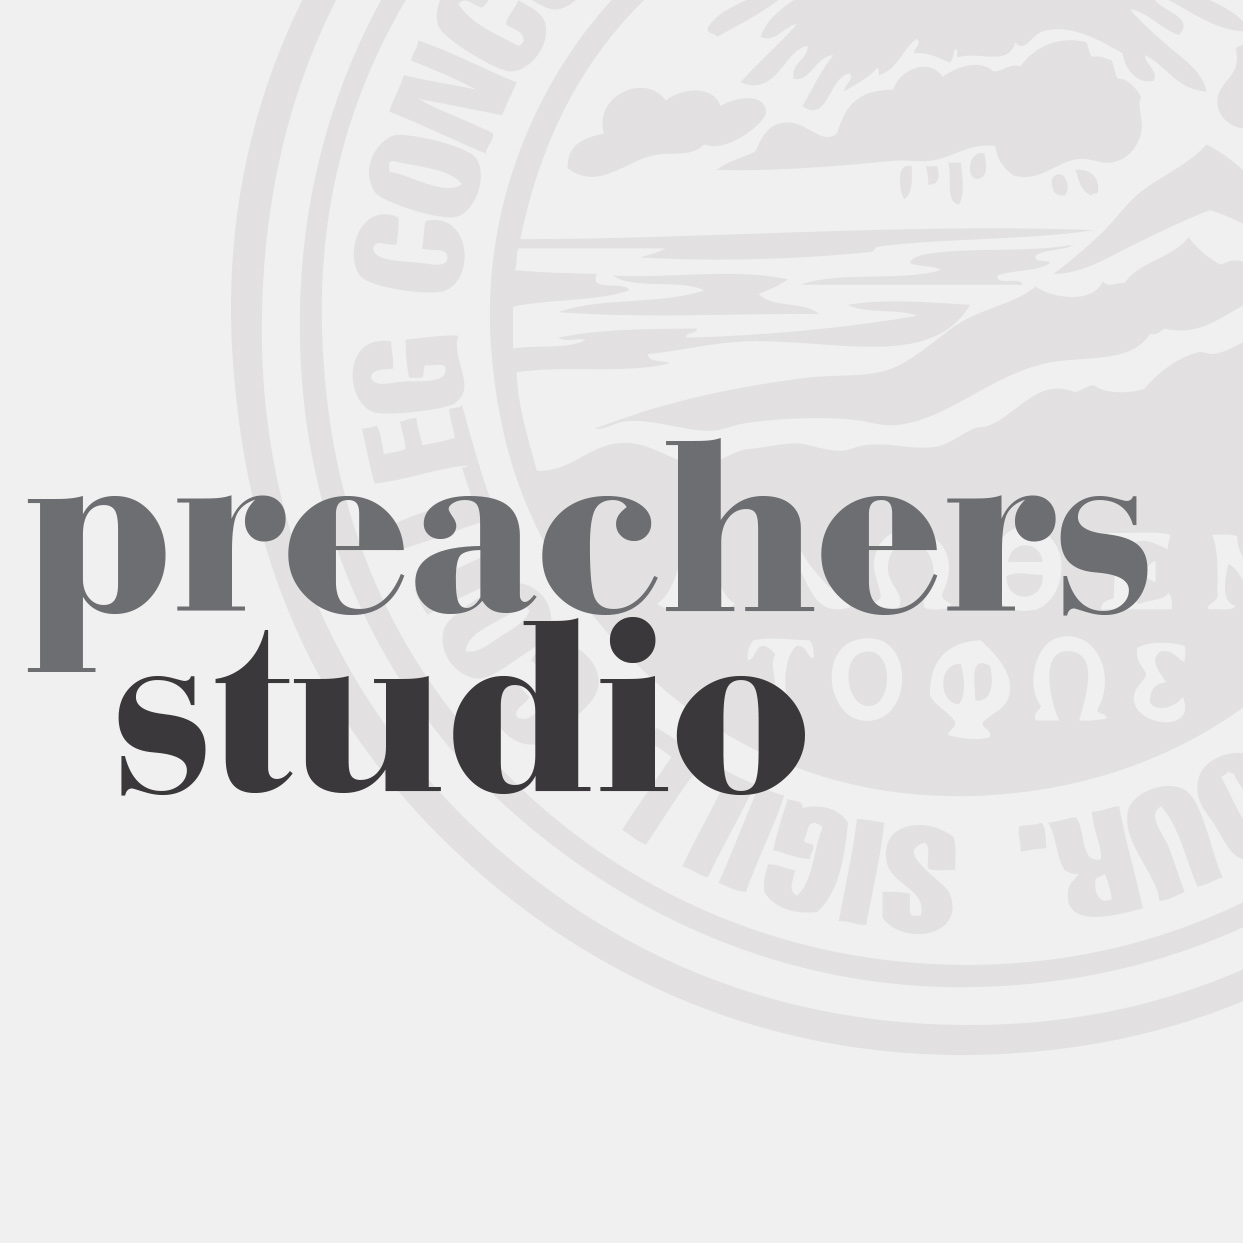 Preachers Studio: William Utech